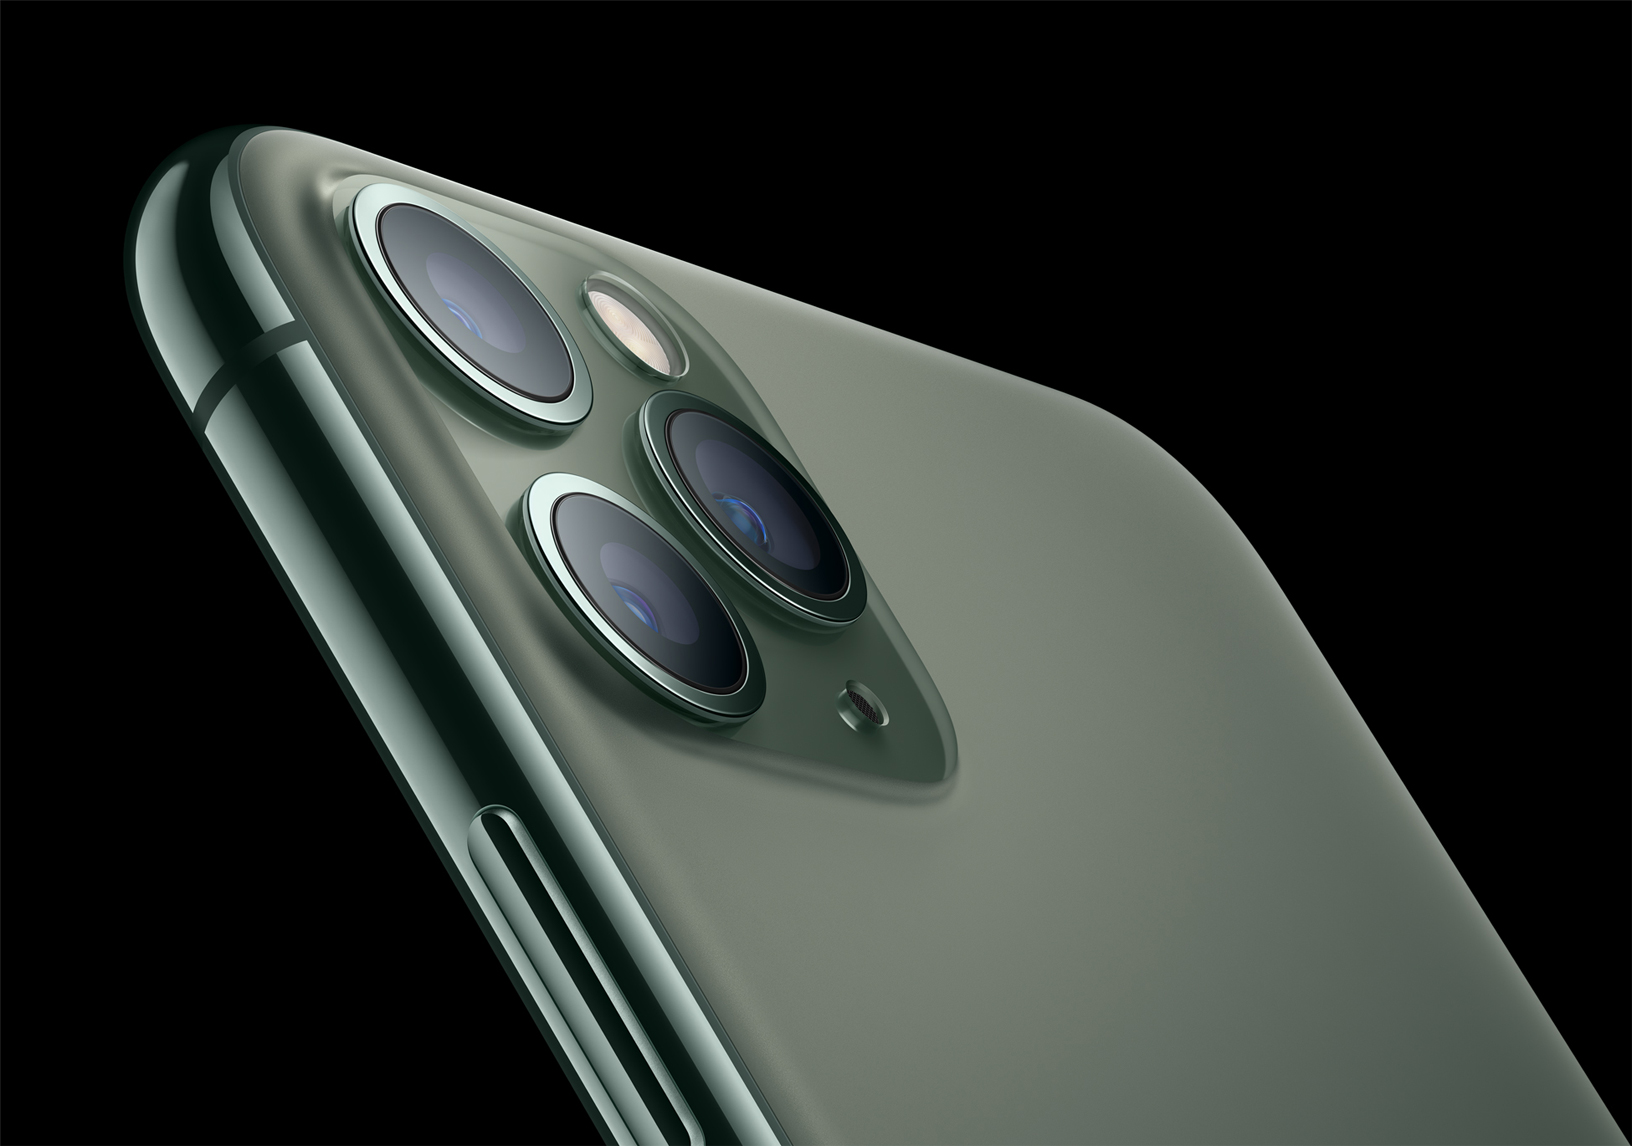 iPhone 11 Pro and iPhone 11 Pro Max have a textured matte glass back and feature the toughest glass ever in a smartphone. (Image via Apple)